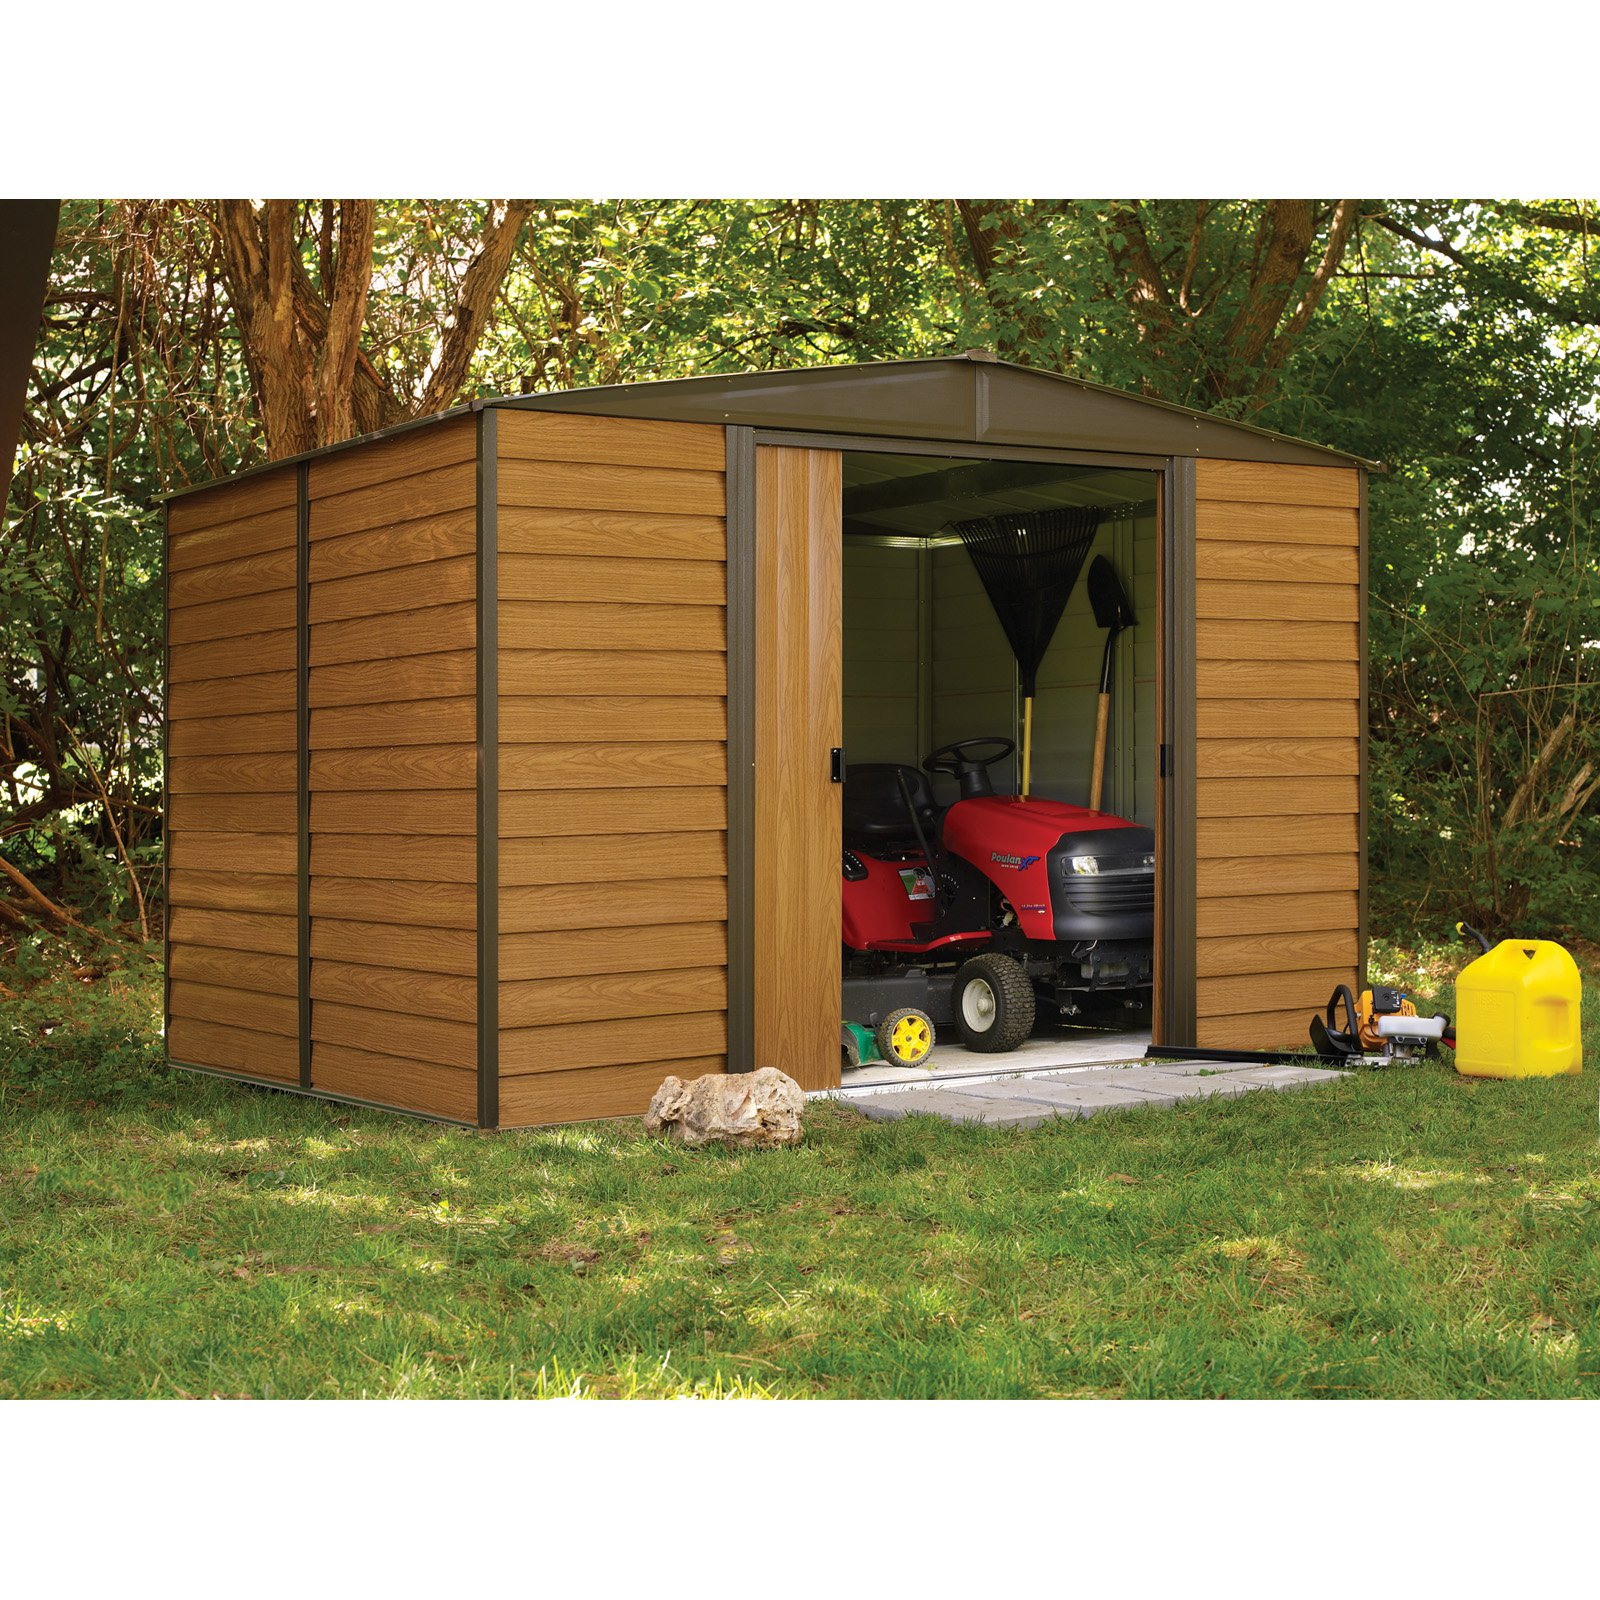 Arrow Shed Woodridge 10 x 8 ft. Steel Storage Shed